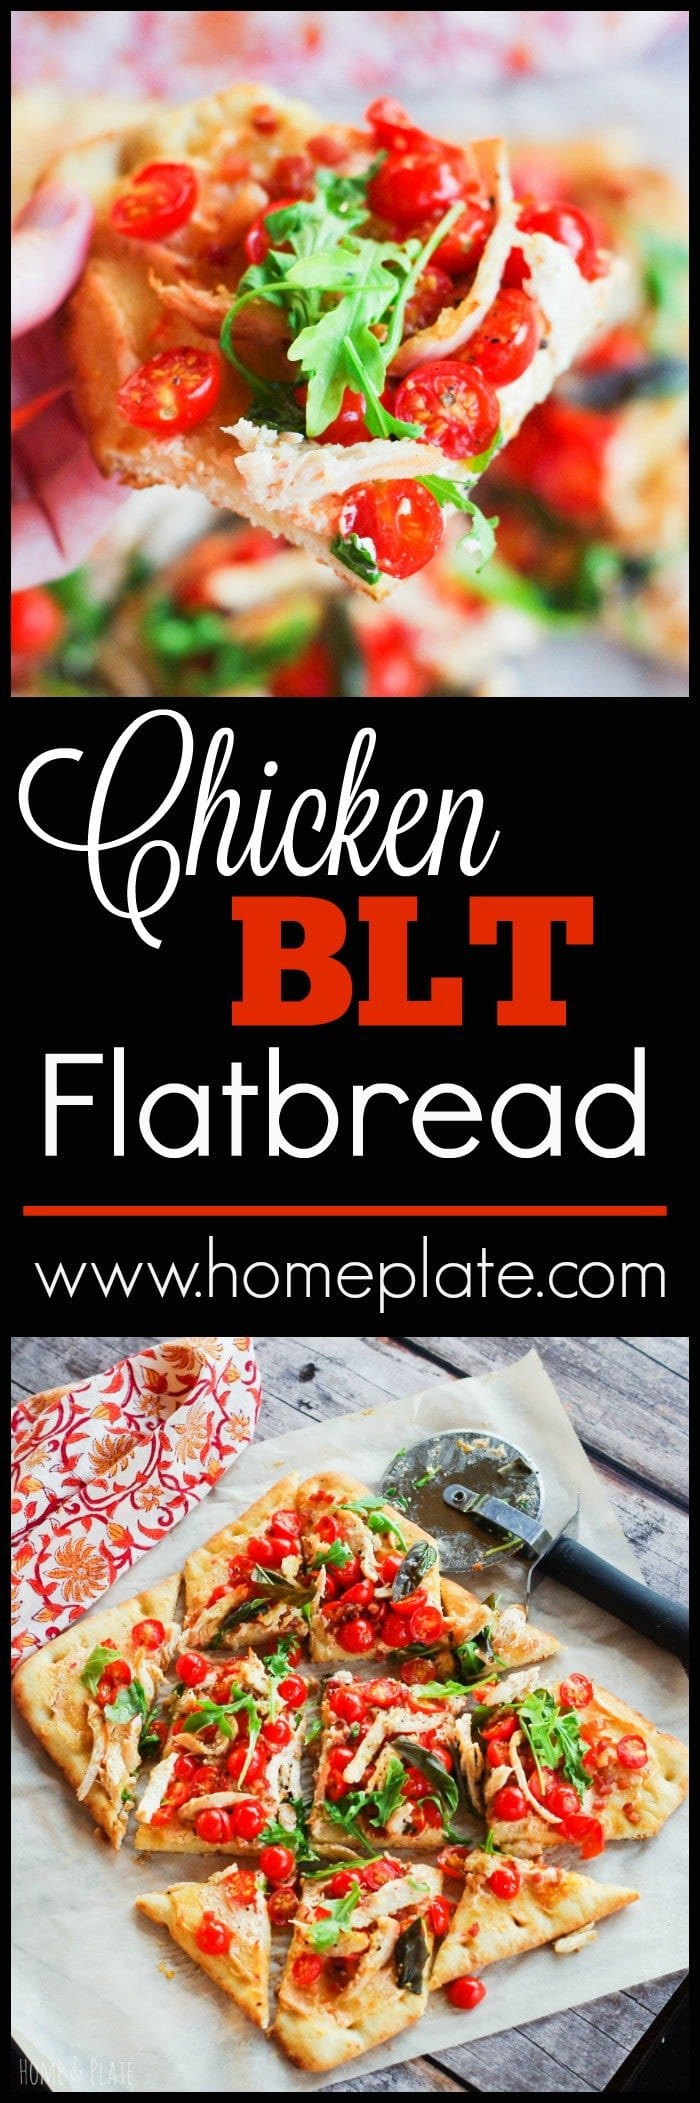 Chicken BLT Flatbread | www.homeplate.com | Enjoy summer